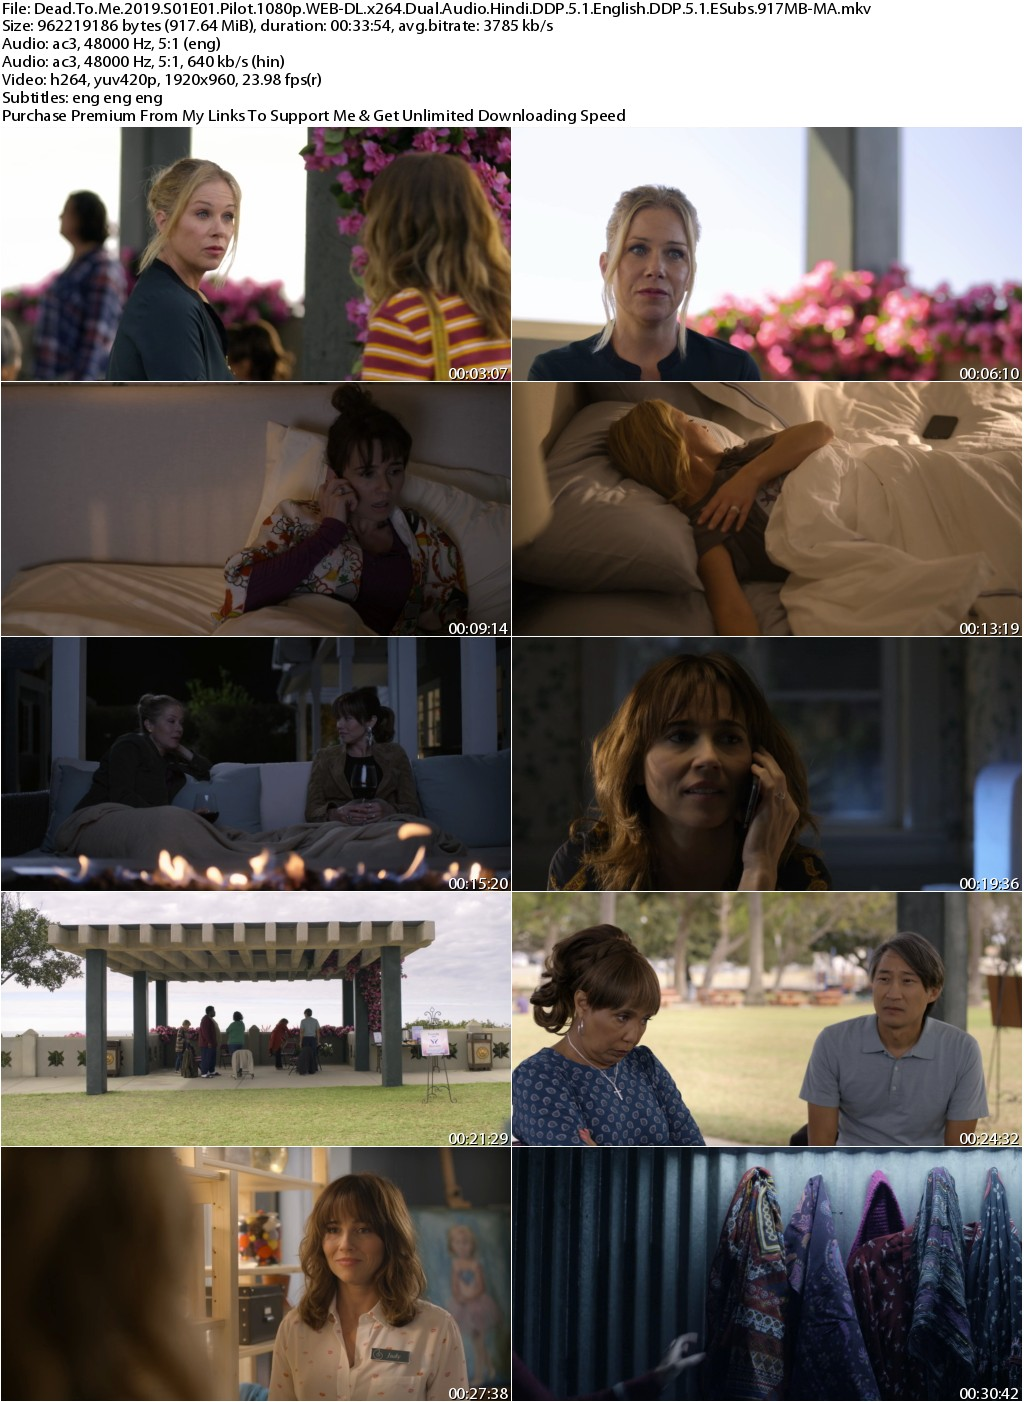 Dead To Me 2019 S01 Complete 1080p WEB-DL x264 Dual Audio Hindi DDP 5.1 Eng DDP 5.1 ESubs 7.68GB-MA